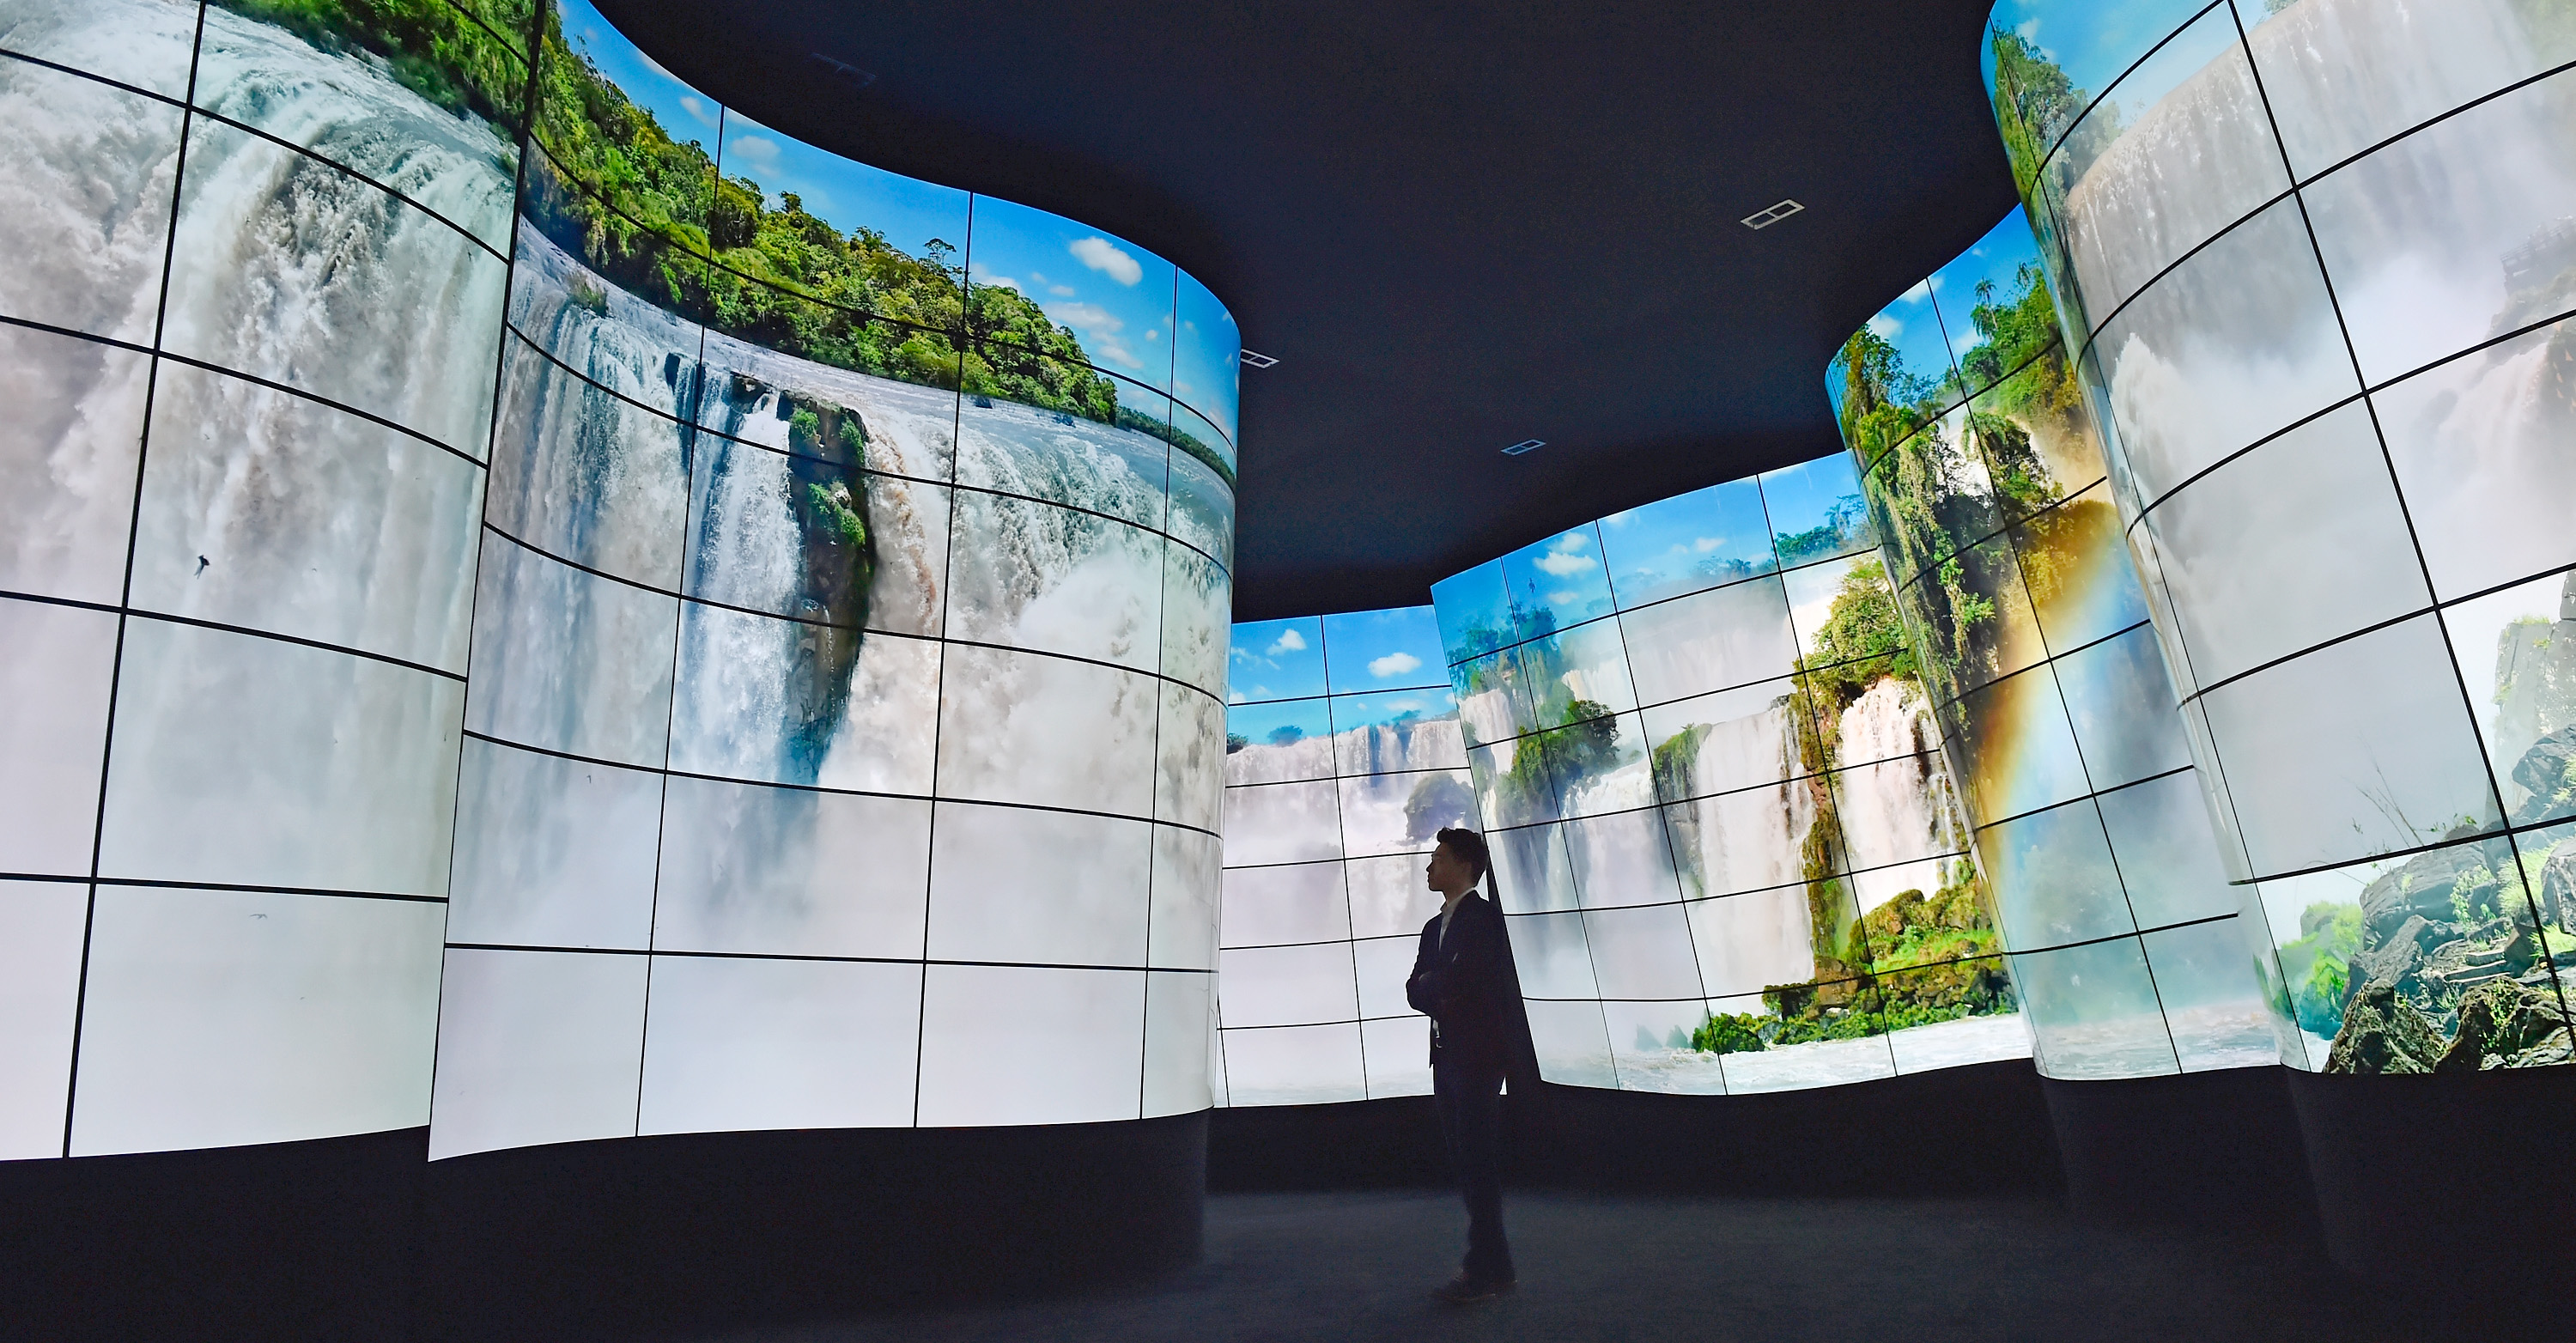 A person stands looking at walls that are a giant curved screen showing a waterfall landscape.